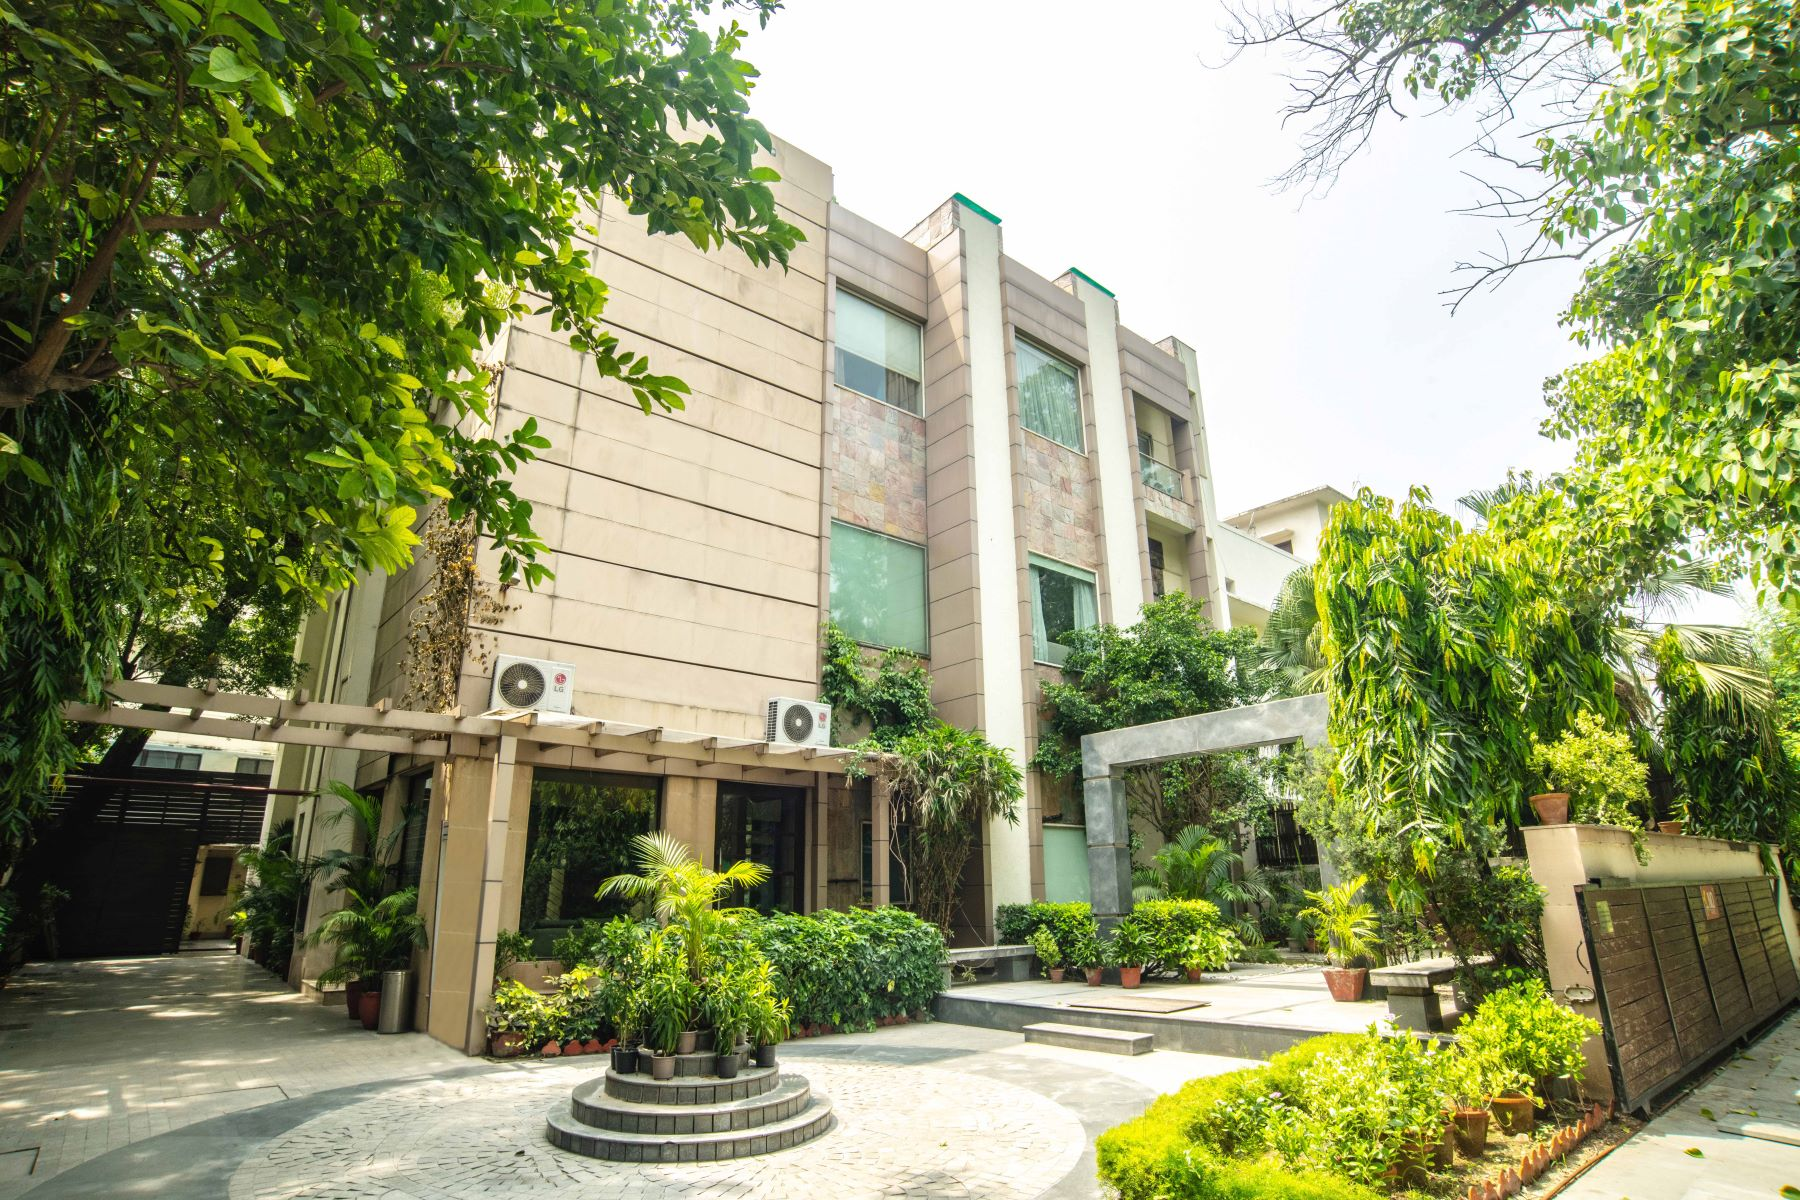 Single Family Homes for Sale at Bungalow in Lutyens Bungalow Zone Sunder Nagar New Delhi, Delhi 110013 India